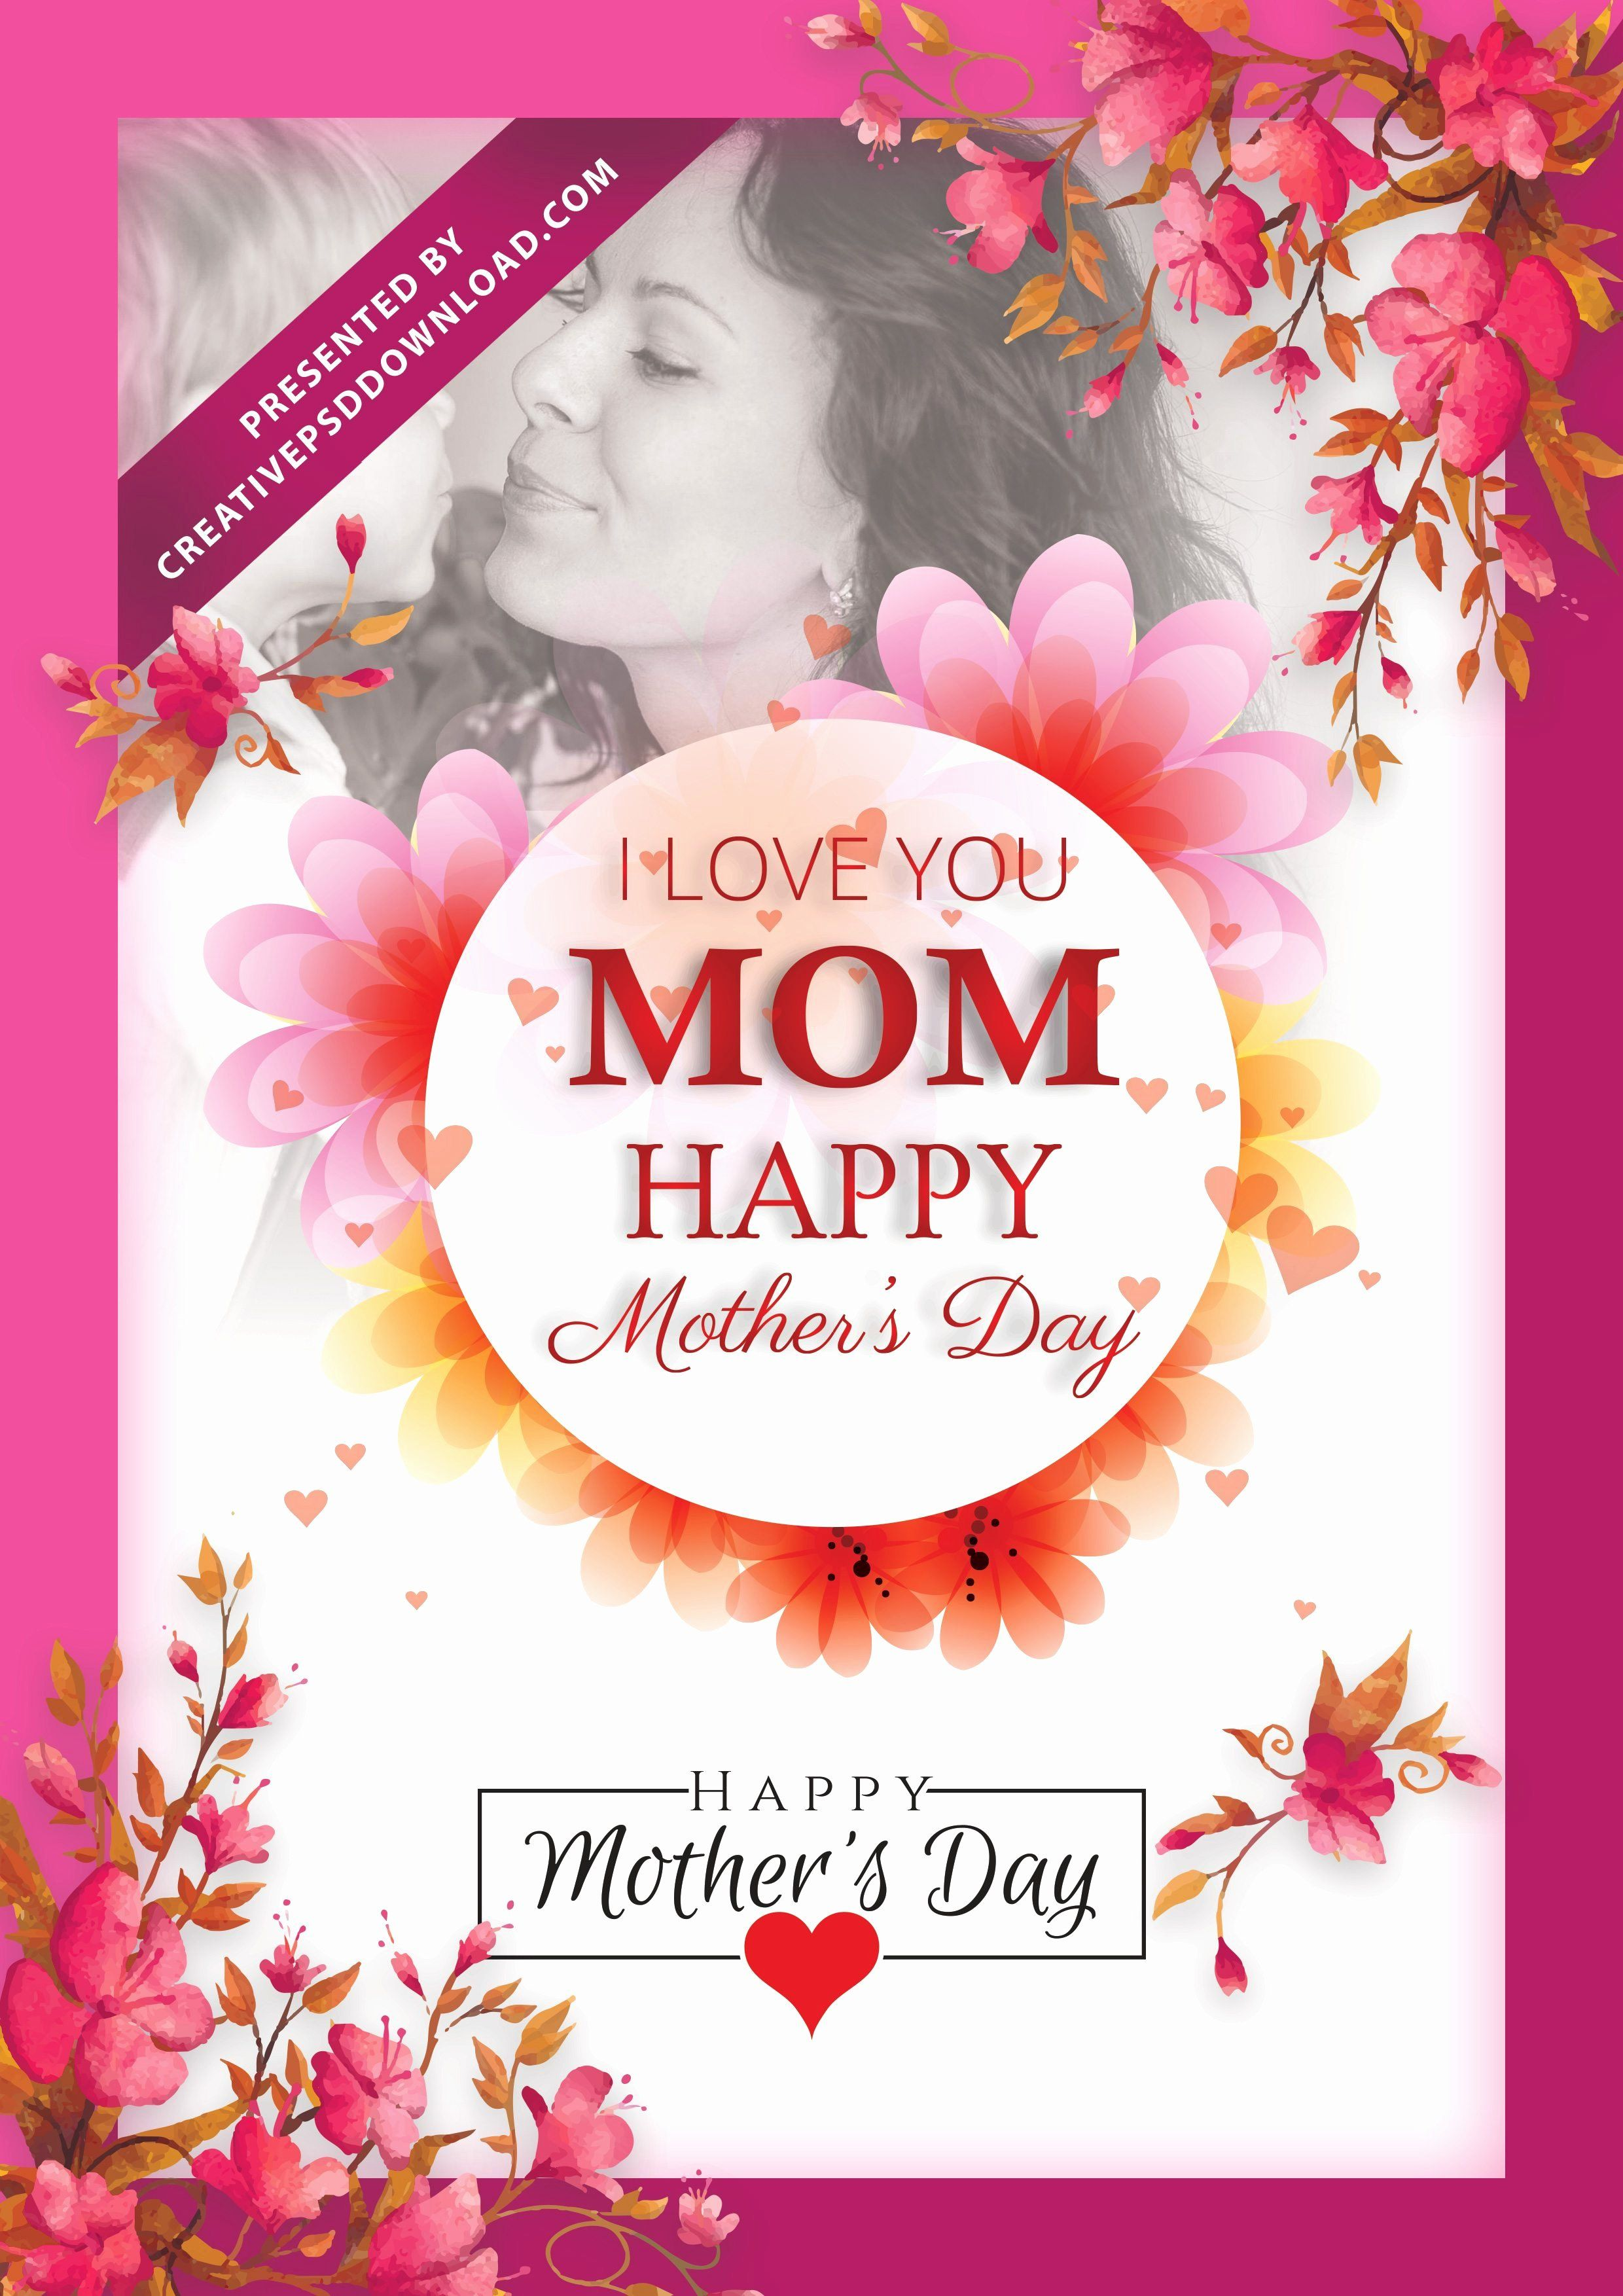 Mother Day Flyer Template Free Elegant I Love You Mom Happy Mothers Day Flyer Template Psd Free Flyer Free Psd Template Free Happy Mothers Day Mother day flyer template free